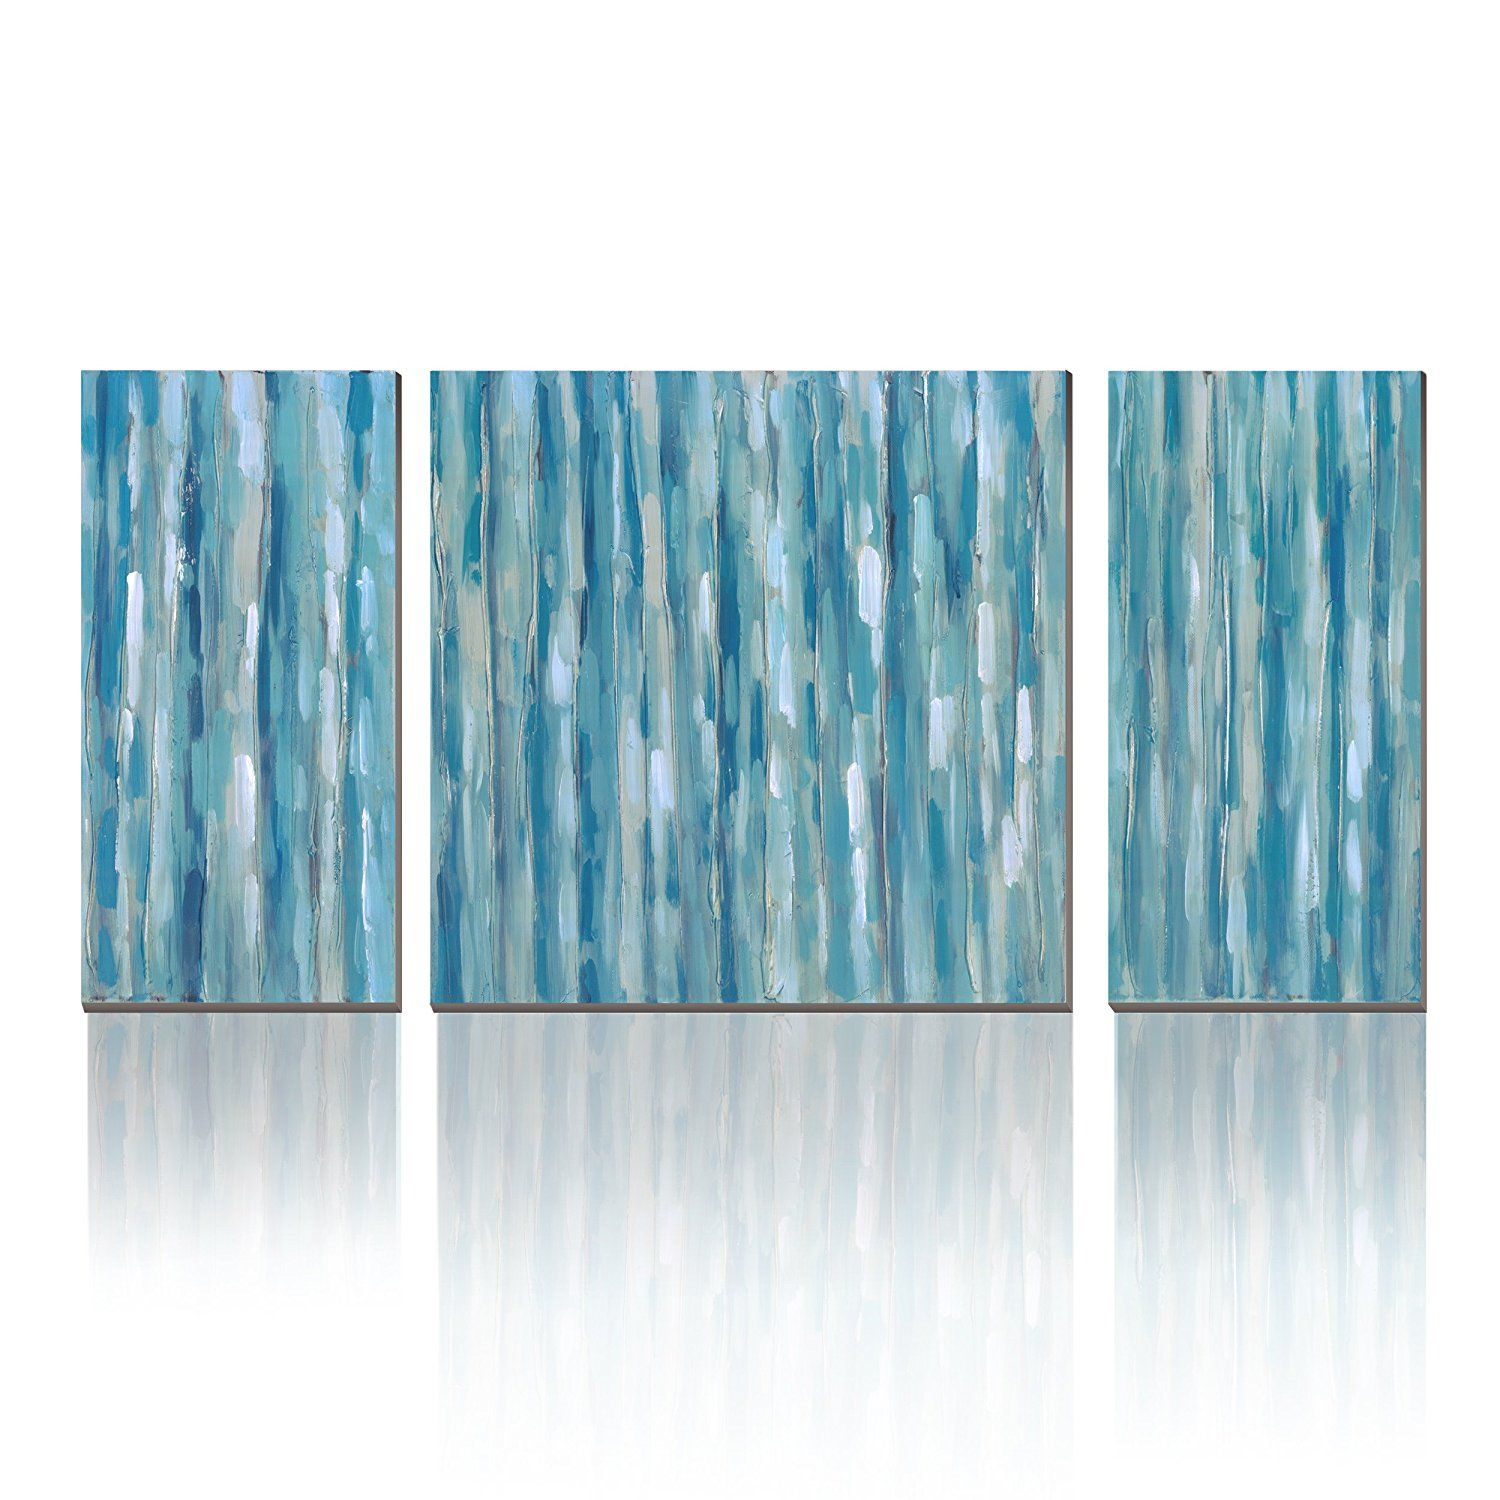 Wesiator 3 Part Blue Stripe Abstract Modern Prints On Canvas Artwork Wall Art For Any Room Scheme Ready To Han 3 Panel Wall Art Stripe Wall Art Panel Wall Art